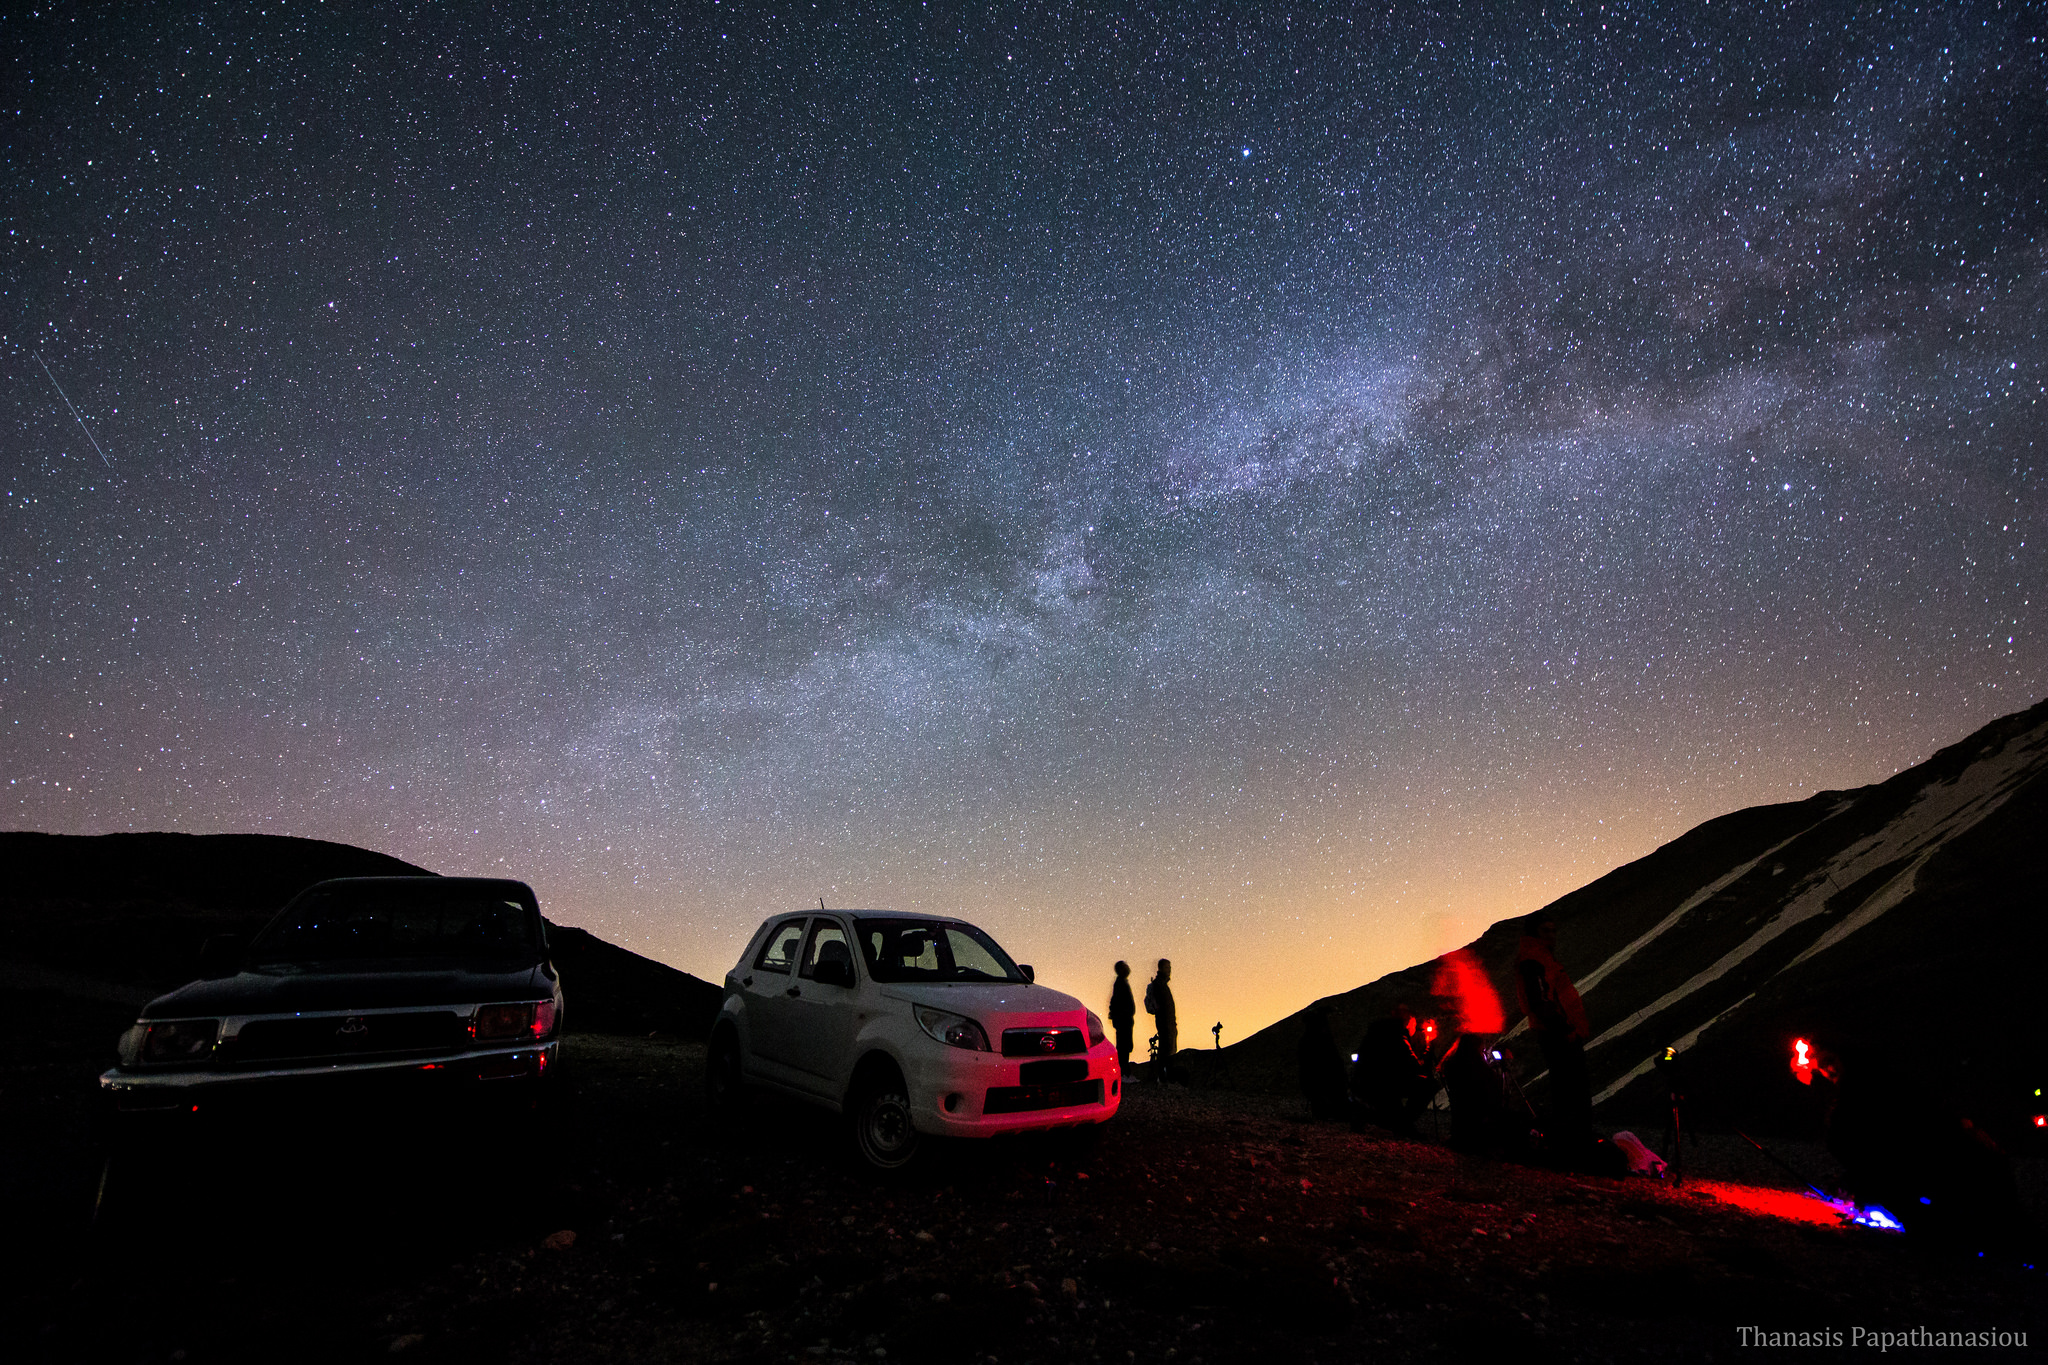 Stargazing photo by Thanasis Papathanaslou